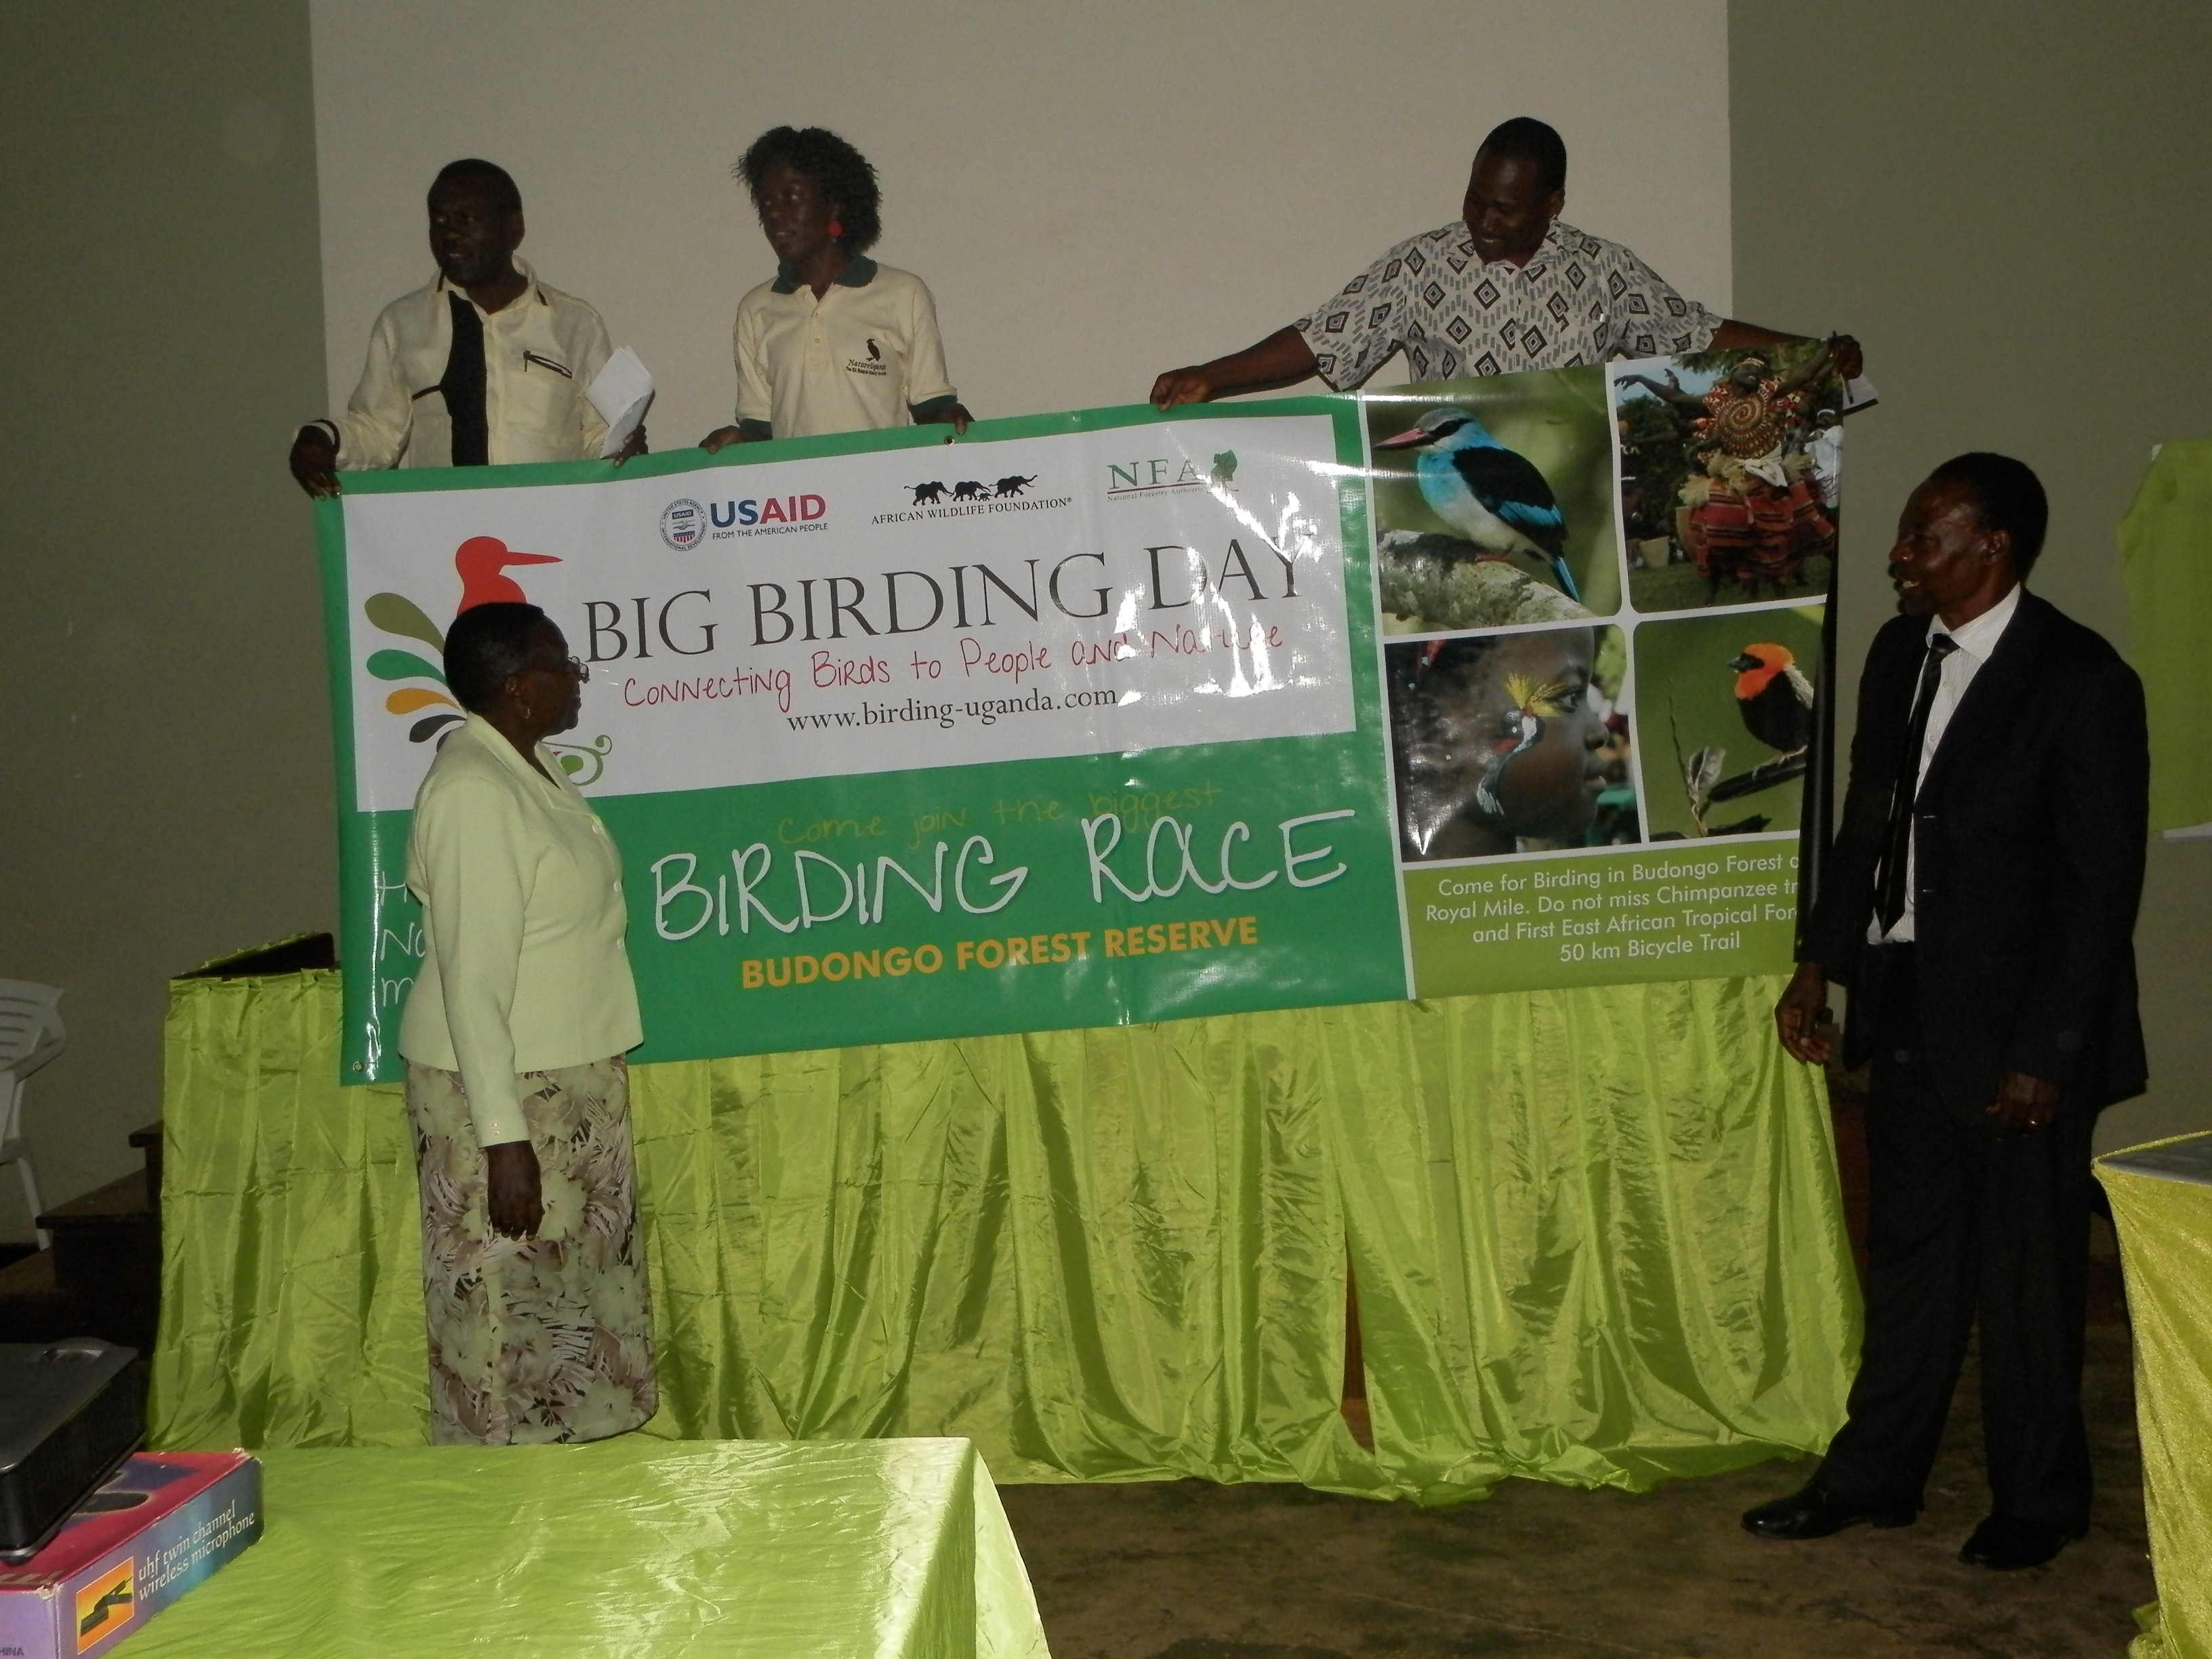 Big Birdin Day Launch at the Uganda Museum